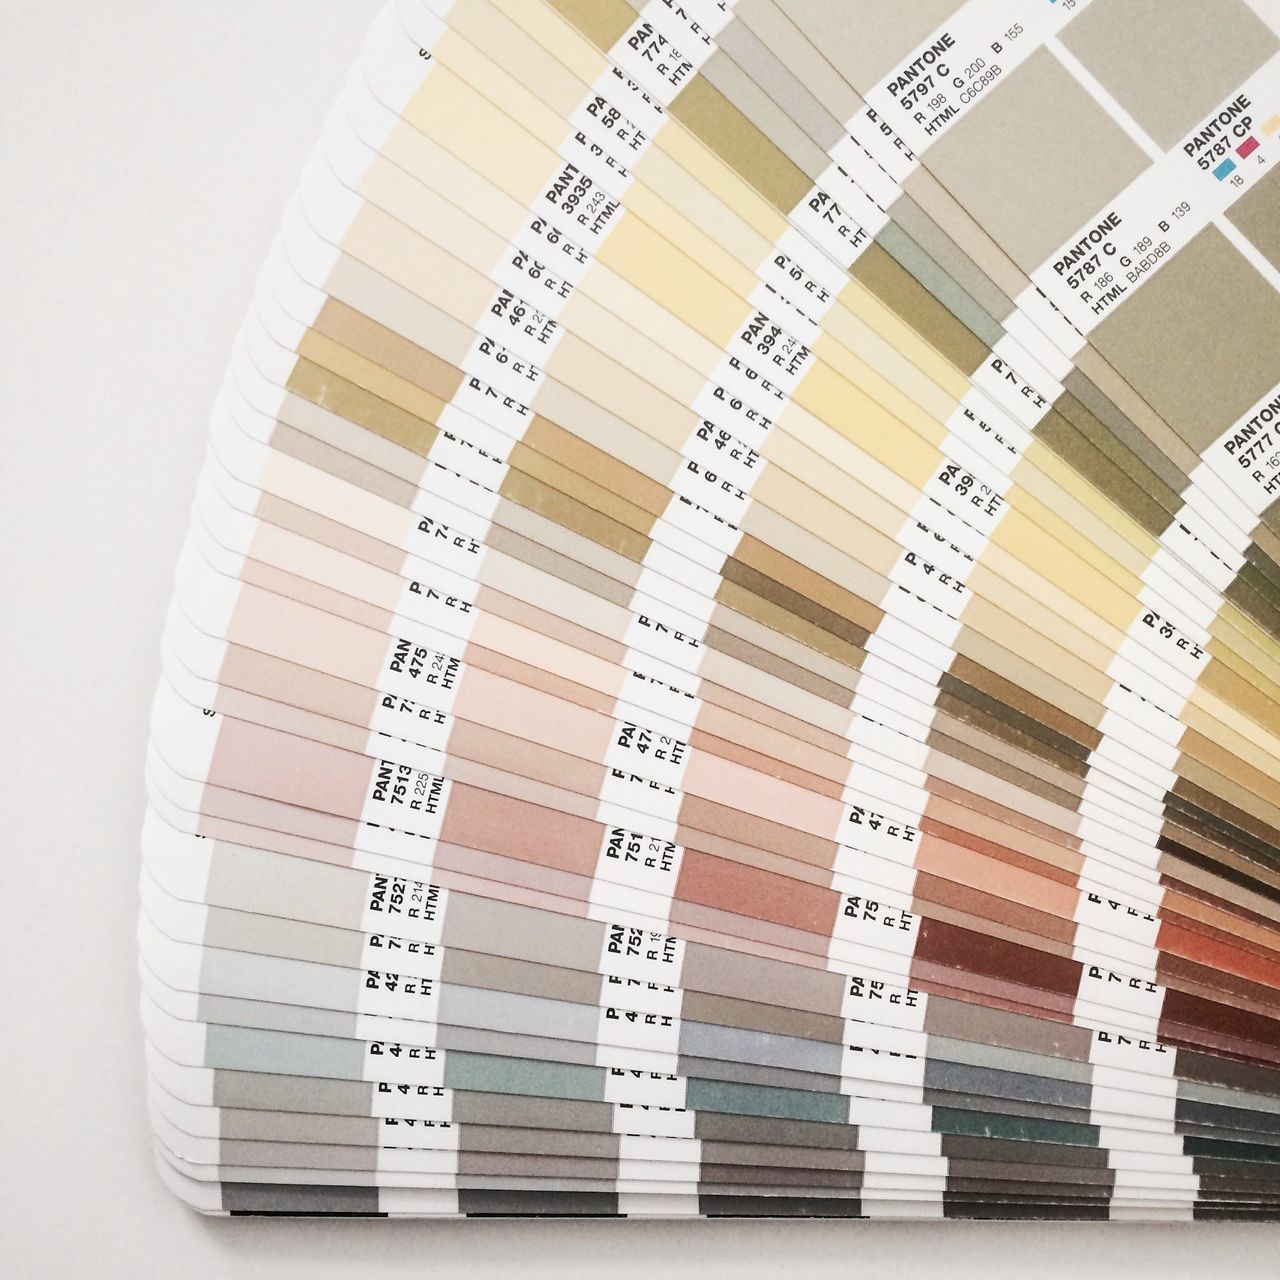 Arrangement Backgrounds Pastel Pastel Power Pastel Colors Brainstorming Color Shades Colors Communication Creation Creativity Education In A Row Indoors  Large Group Of Objects No People Order Page Paper Stack White Background Wood - Material Work In Progress